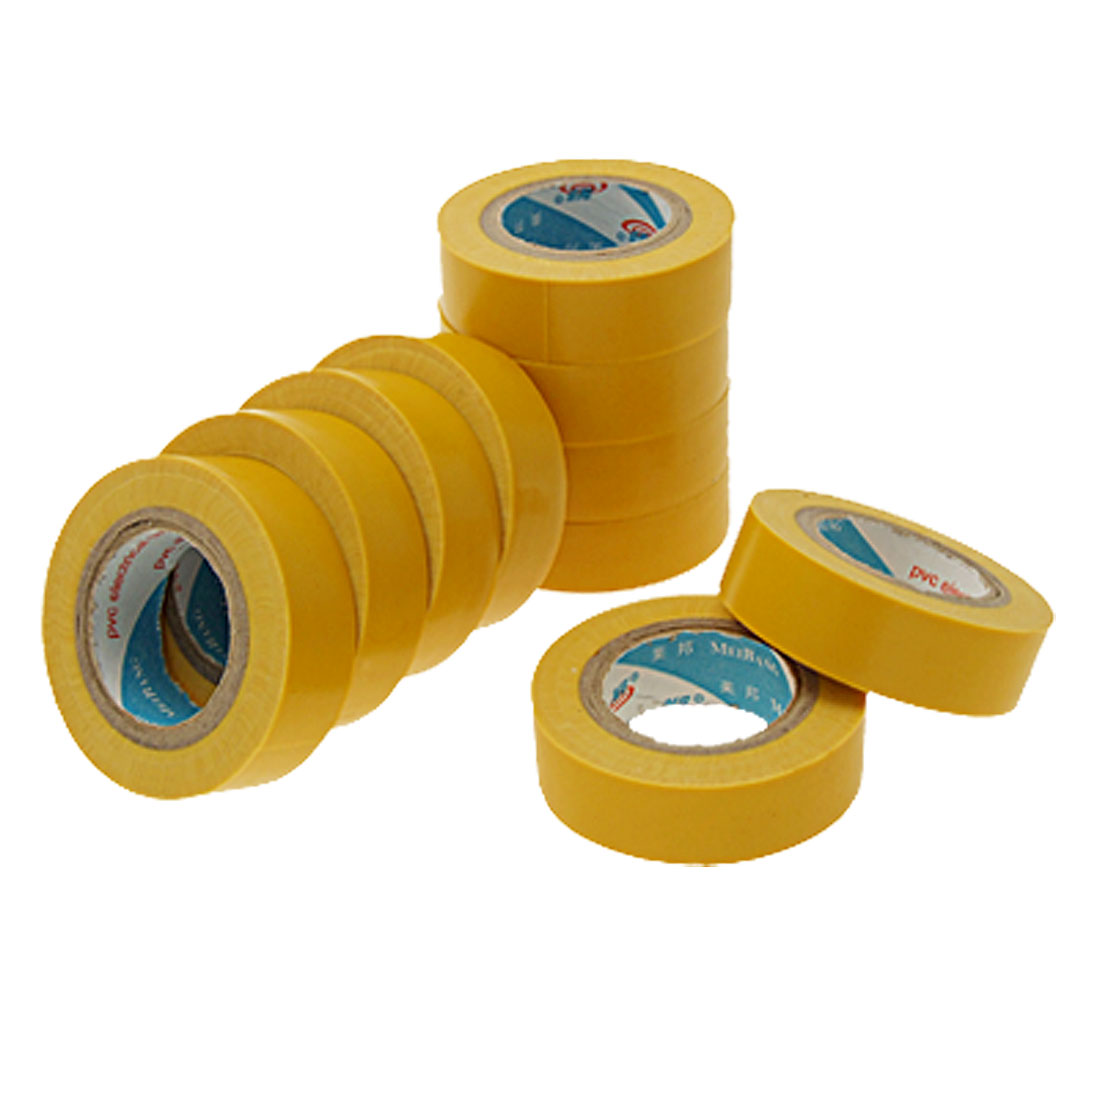 10 Rolls x Yellow 1.6cm Wide PVC Plastic Tape for Electrical Installation